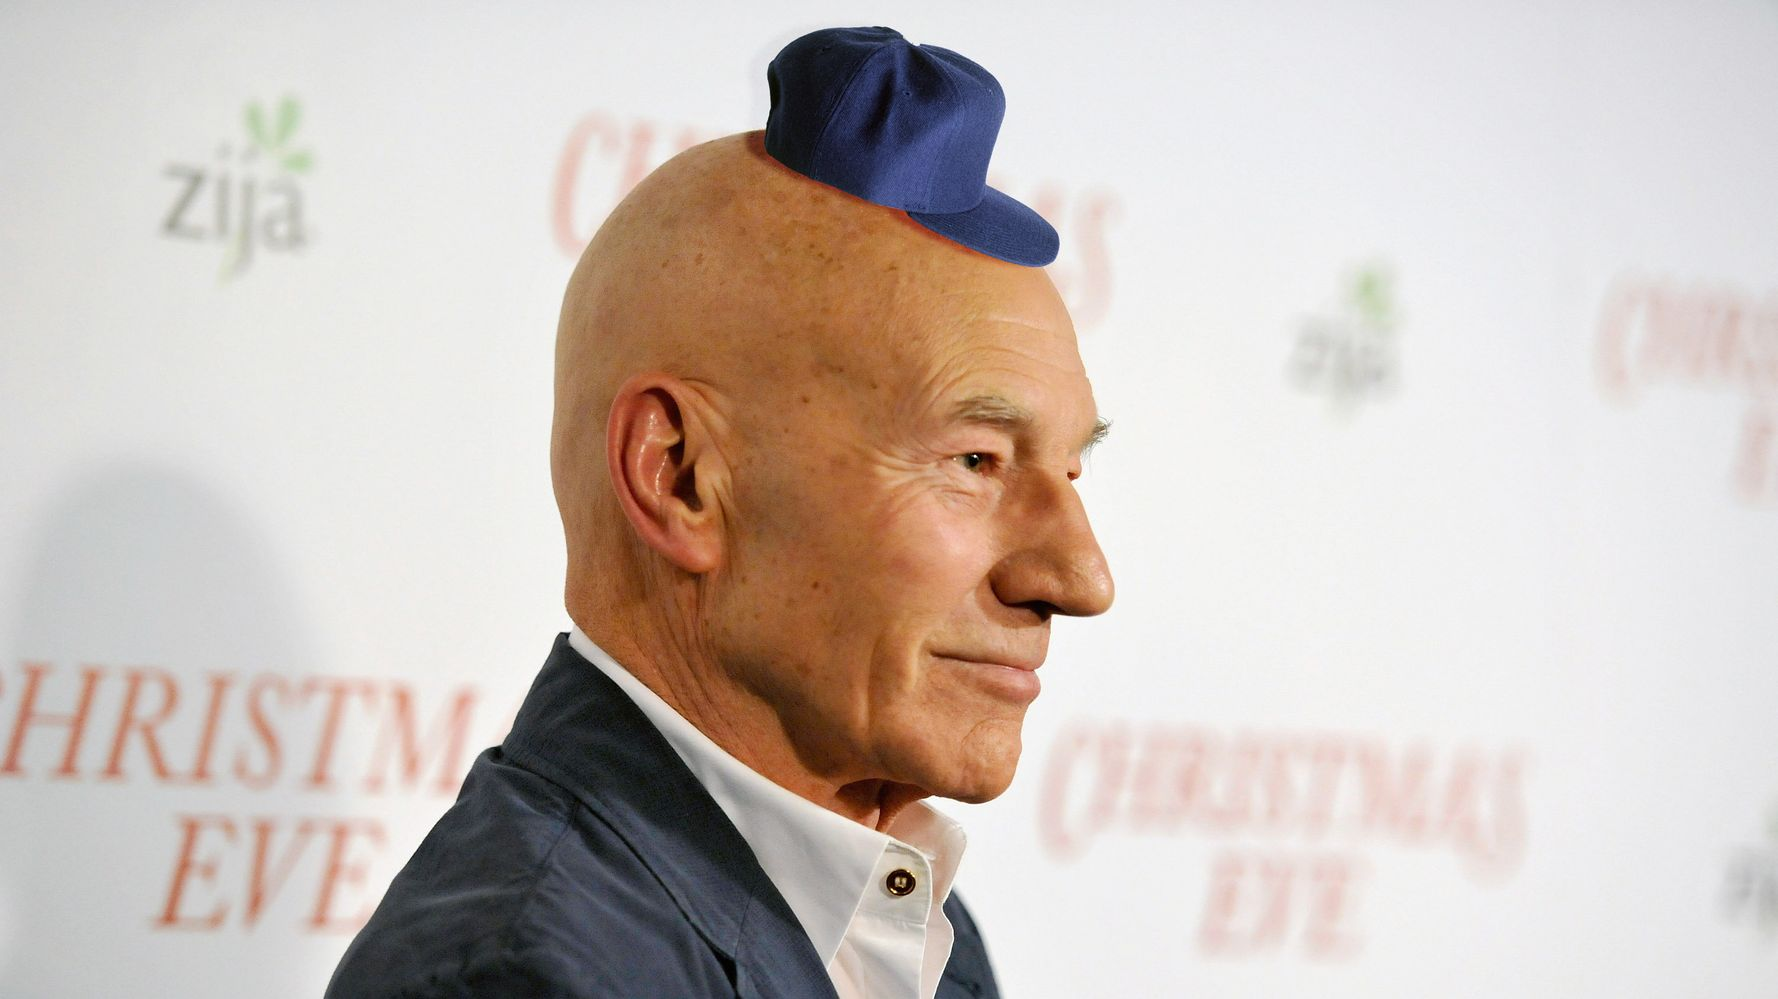 Does Wearing A Hat Make You Go Bald? | HuffPost Life